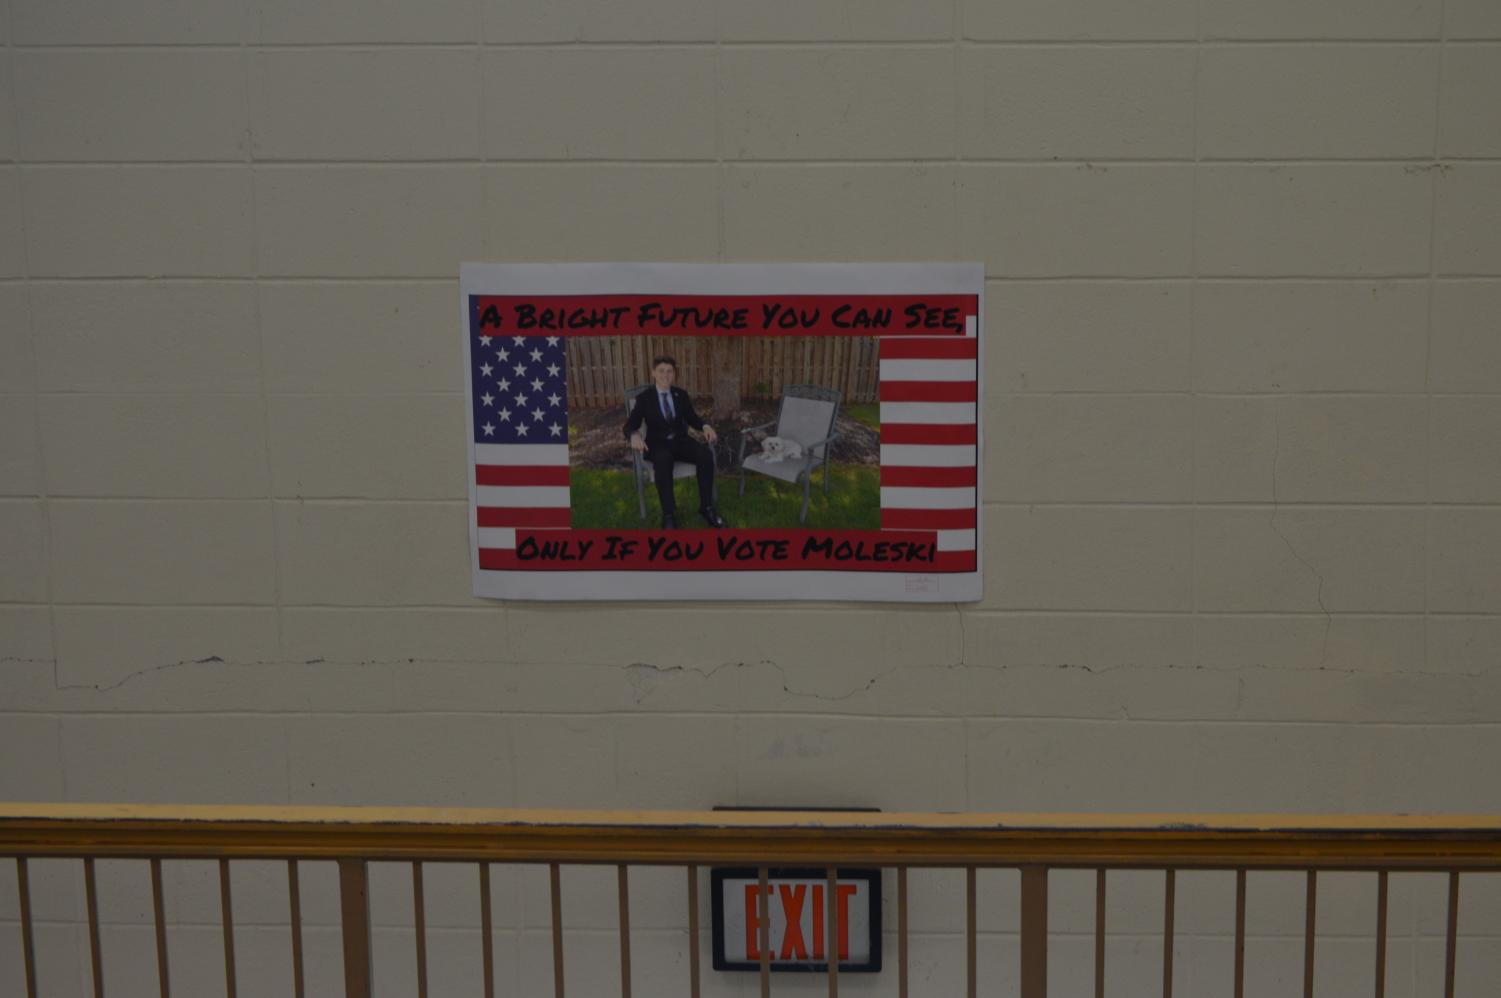 Freshman presidential candidate Luke Moleski's campaign posters are among the most eye-catching.